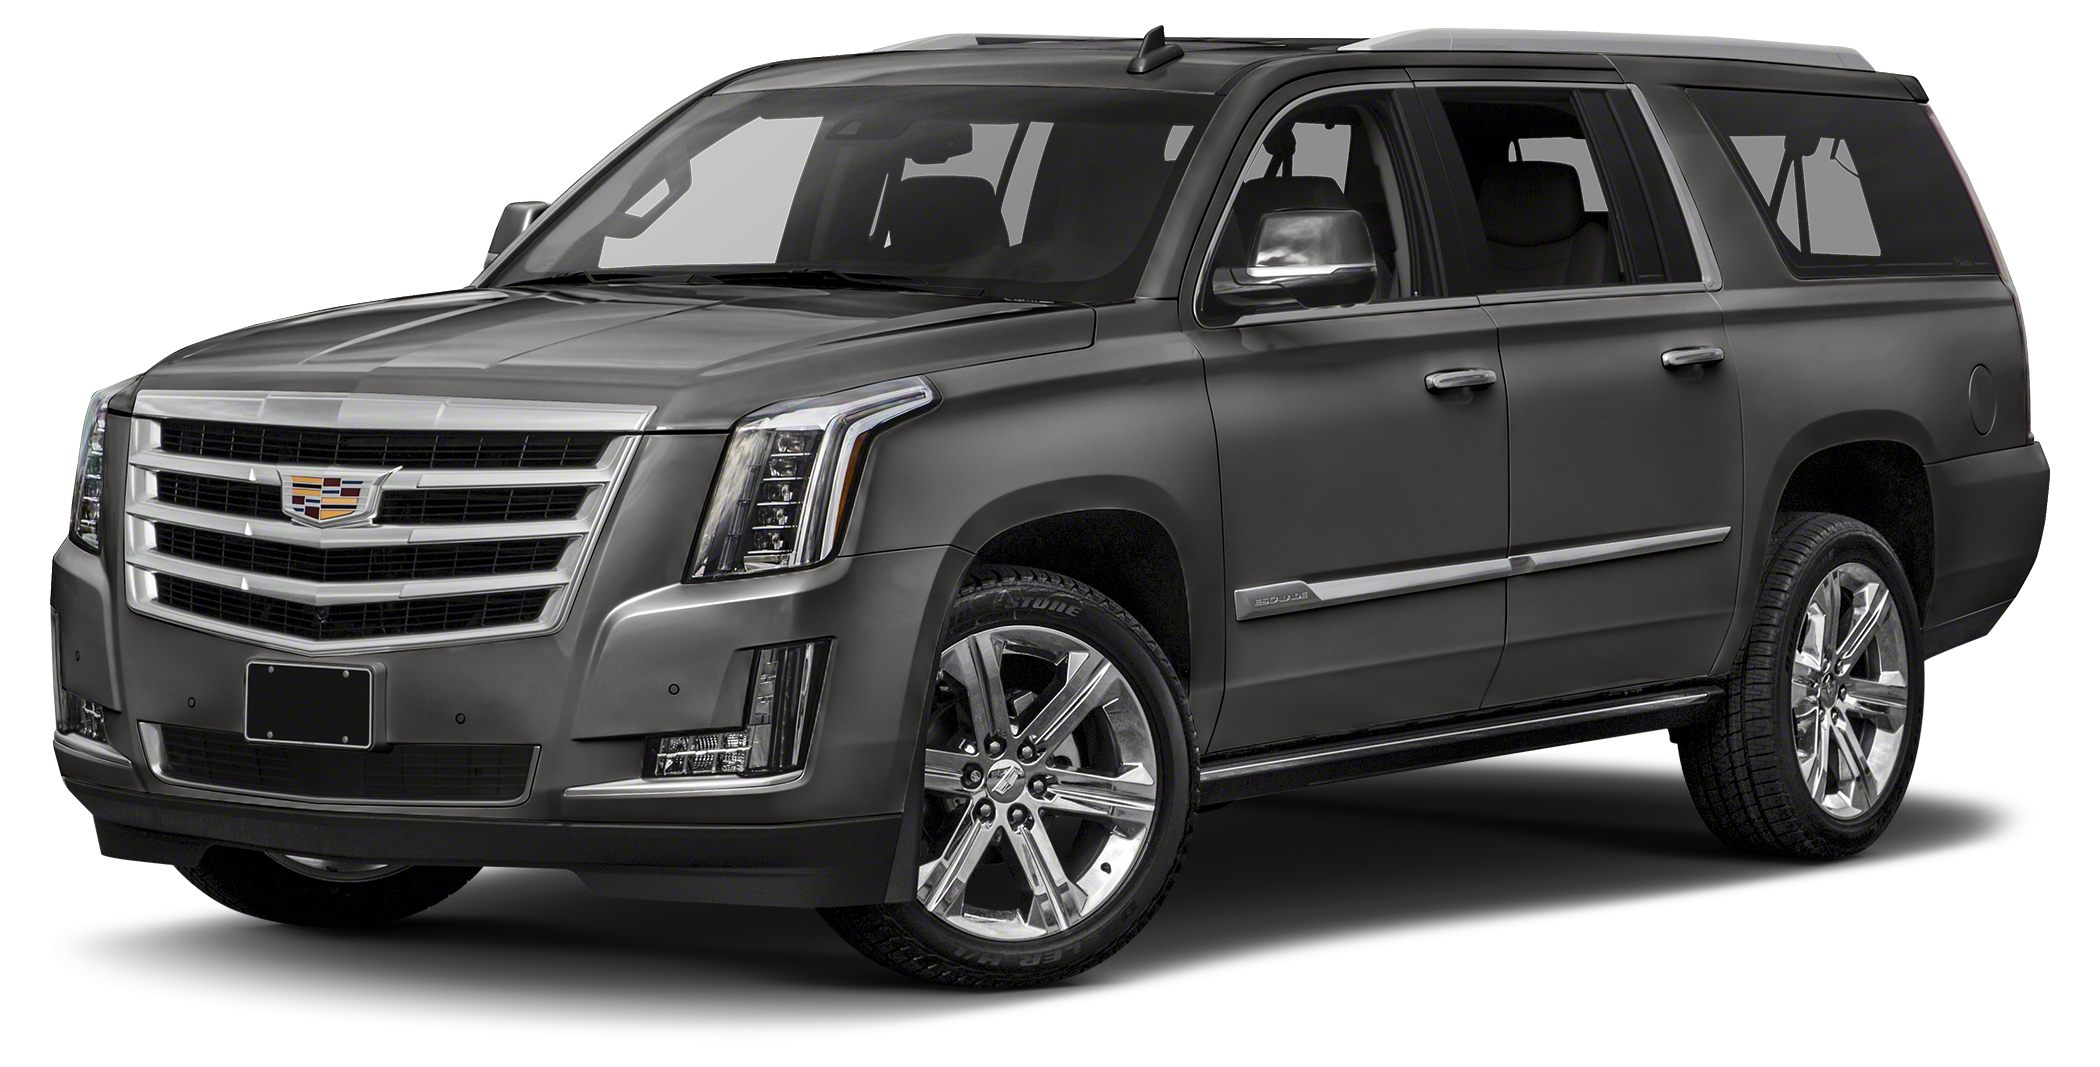 2018 Cadillac Escalade ESV Premium Luxury Miles 5Color Dark Granite Stock 180165 VIN 1GYS4JK